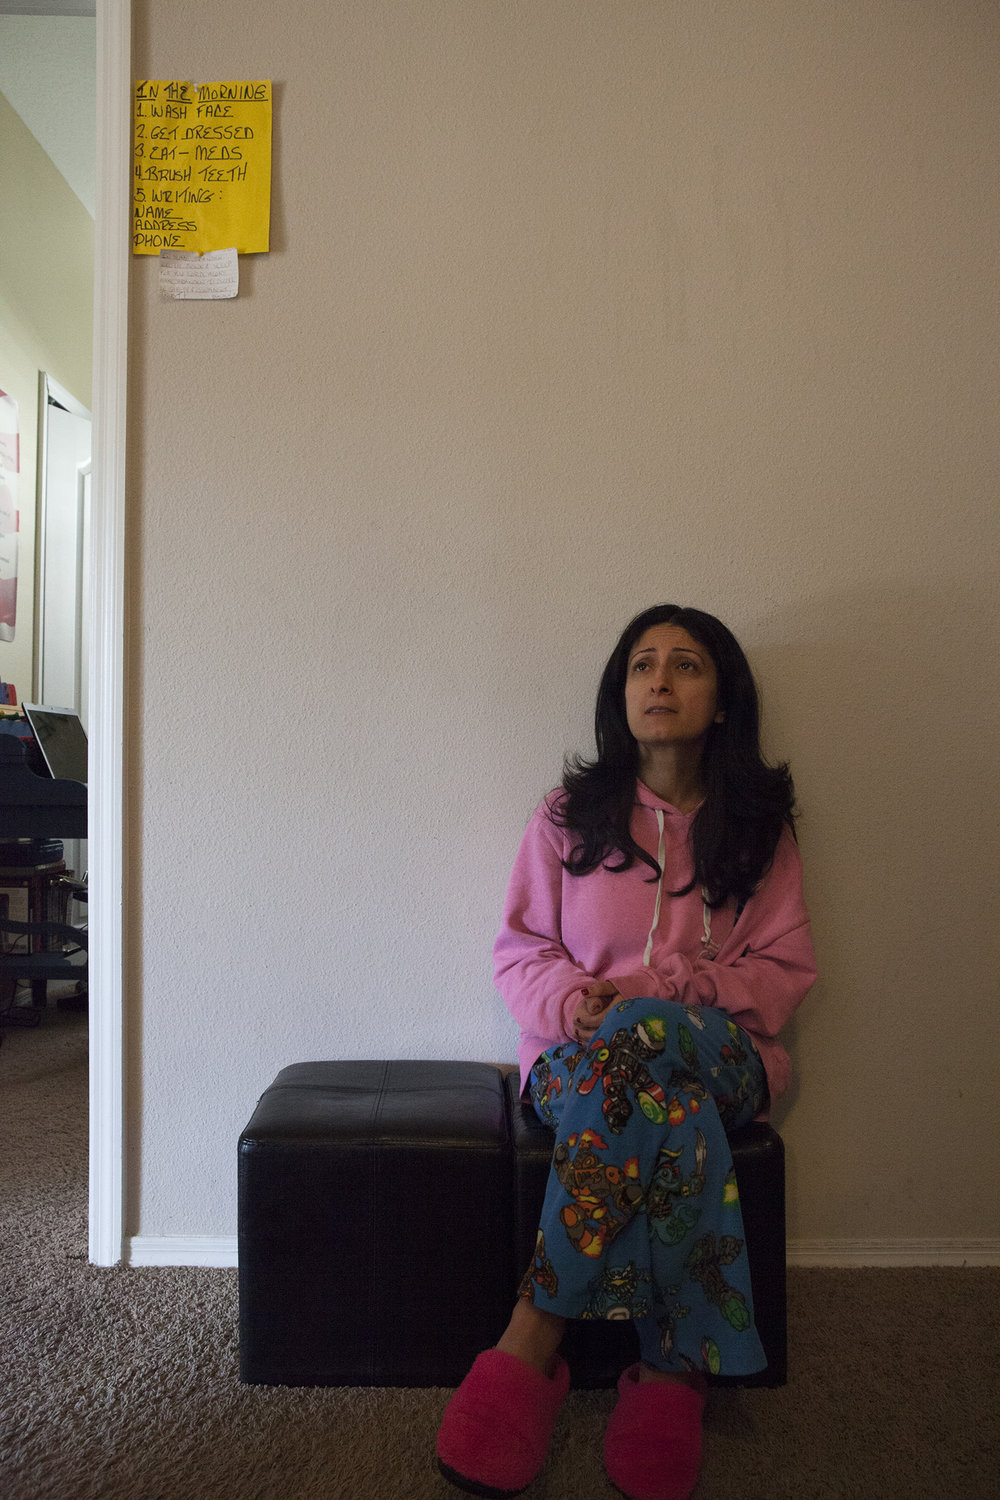 Renee in the early morning, sitting outside of Branden's room. Above Renee on the yellow sheet of paper, is a list of things for Branden to remember to do in the morning; wash his face, get dressed, take his meds, brush his teeth, and to write his name, address, and phone number. Tampa, FL.